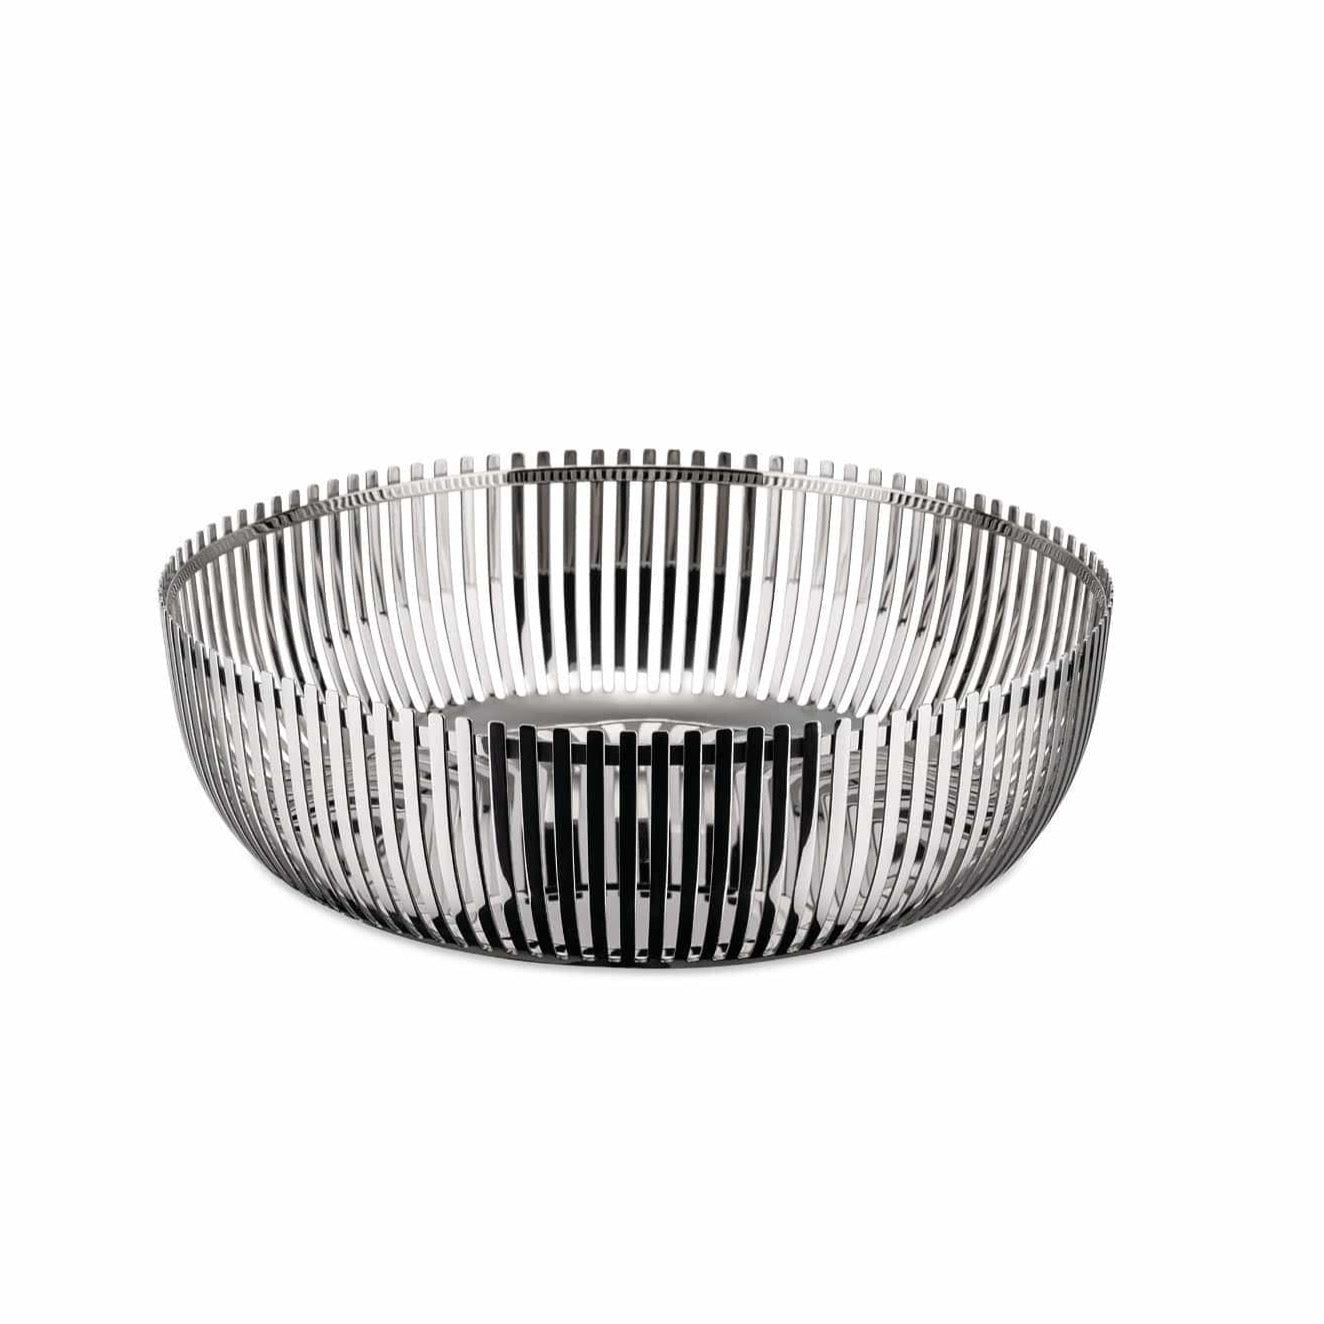 Alessi Alessi Round Basket - large - Silver PCH02/23